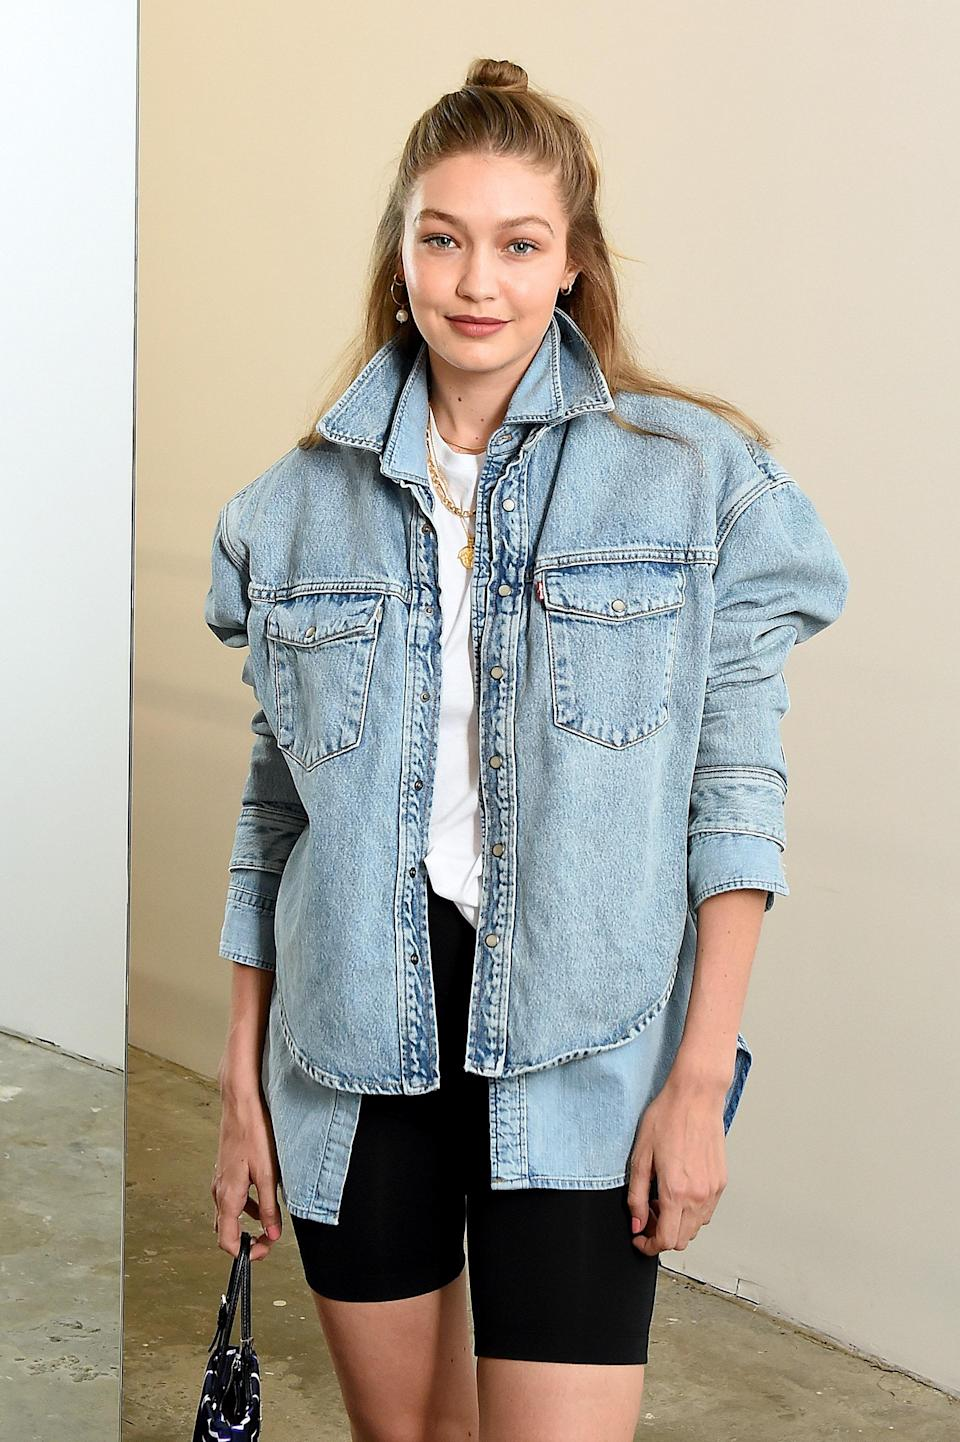 The '90s are calling! Gigi rocks one of the decade's best model-off-duty looks: a plain white tee, black bike shorts, and a denim jacket. Not just any denim jacket; this seems to be two chambray button-downs pulling double duty and serving MAJOR shoulders. What can we say? She loves her denim!